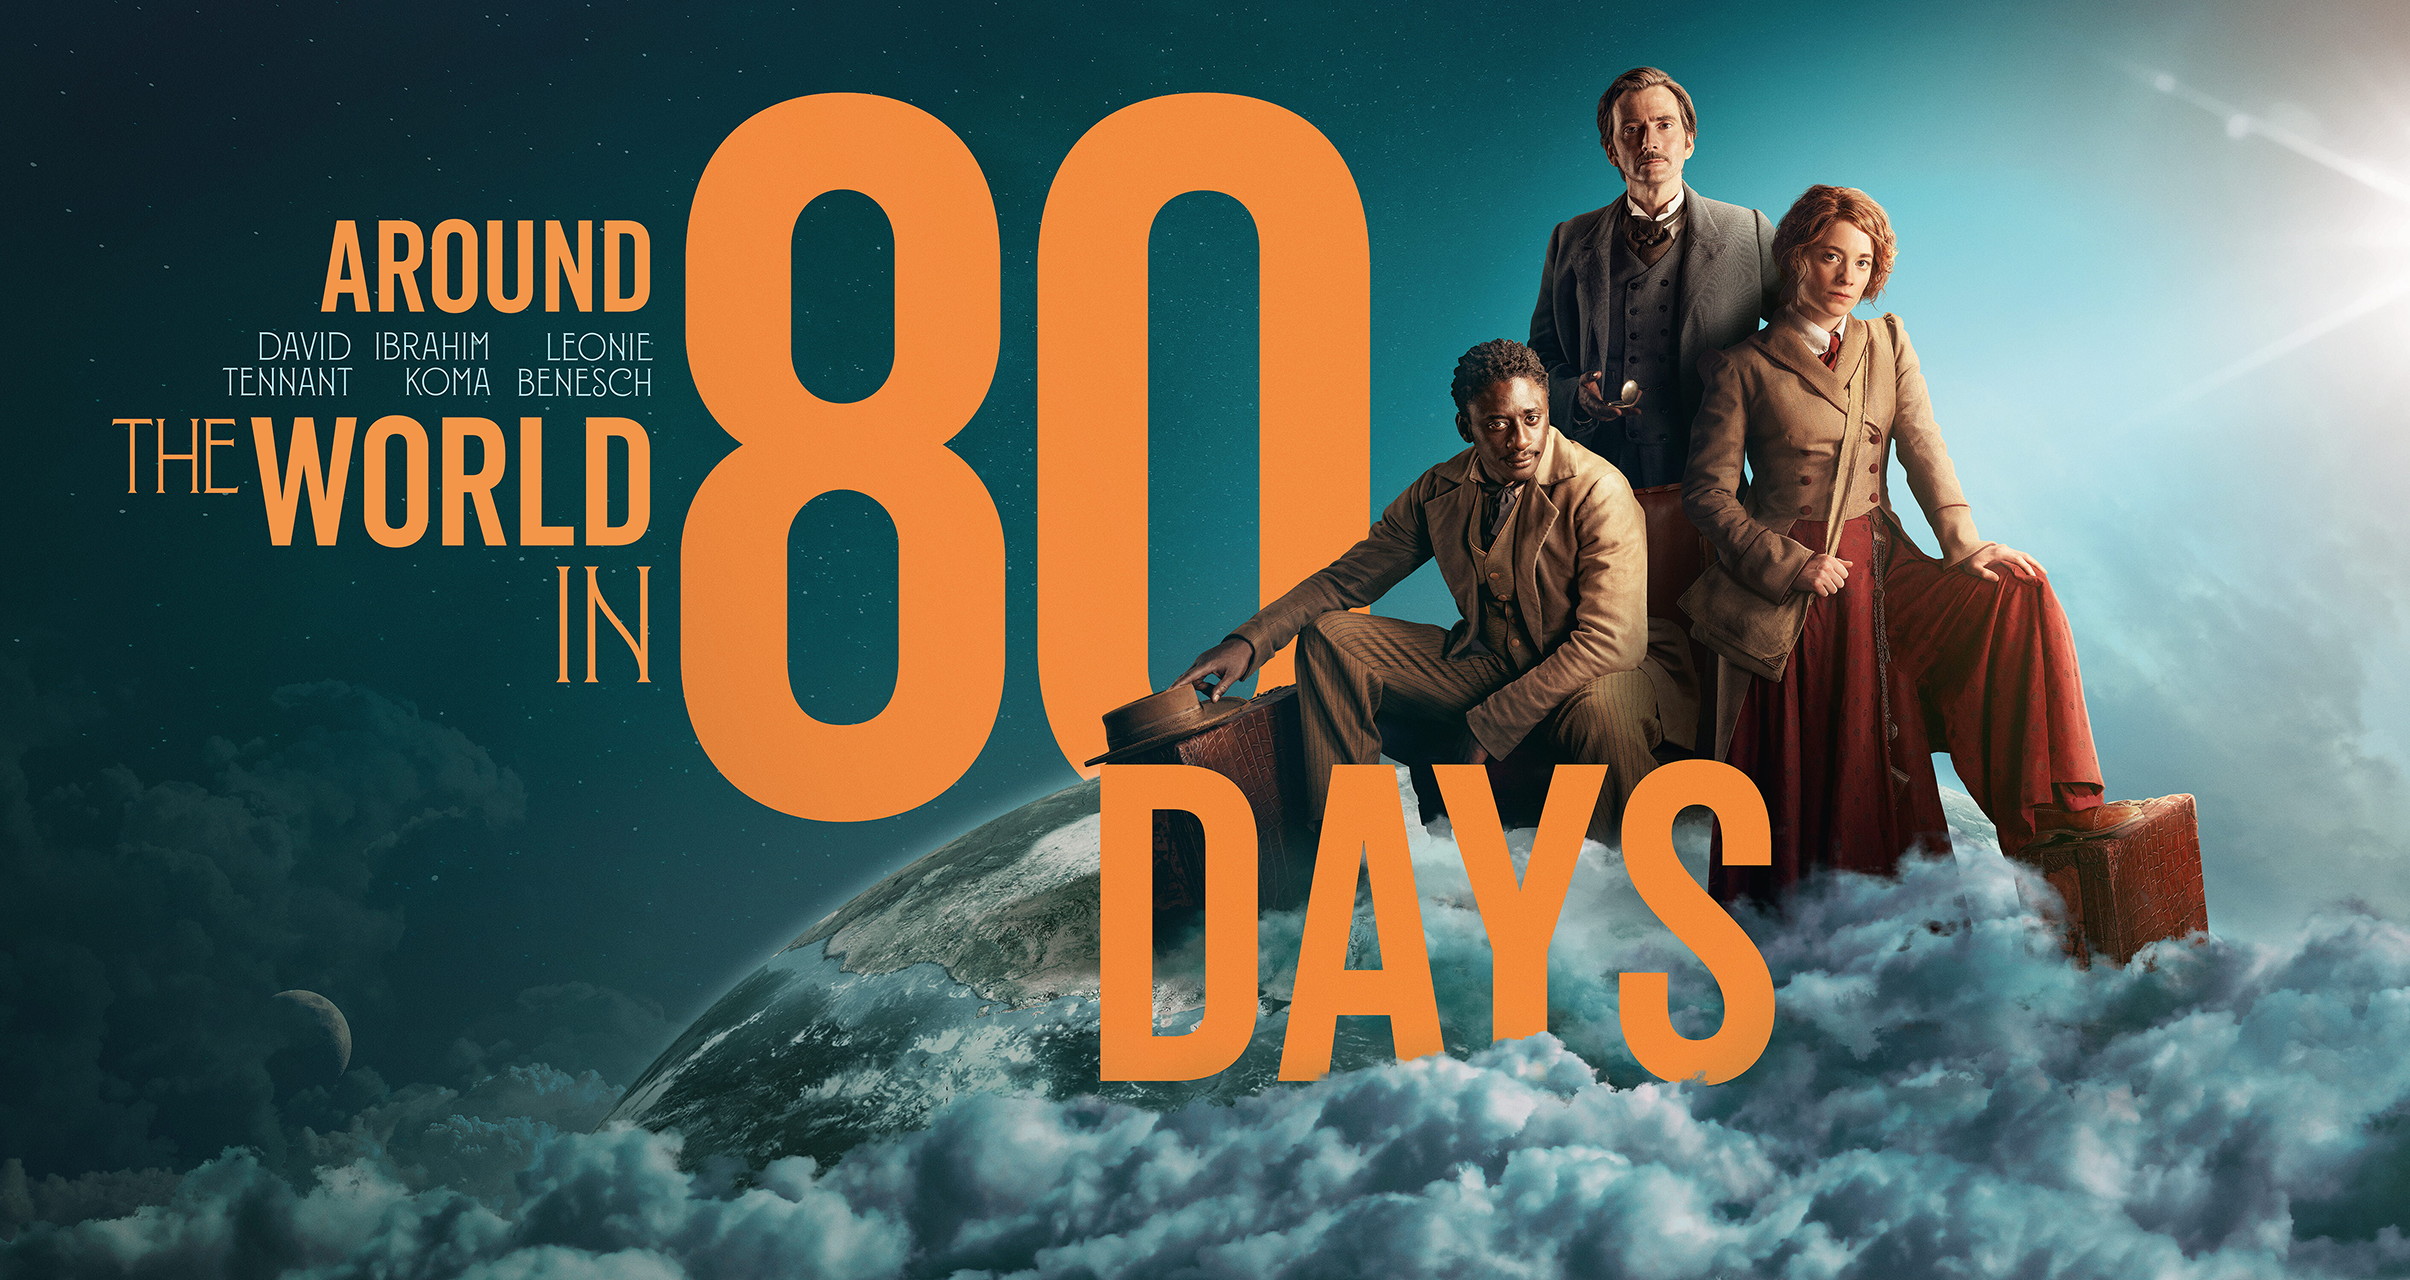 First Look Image - David Tennant, Ibrahim Koma and Leonie Benesch on their journey AROUND THE WORLD IN 80 DAYS - COMING TO SCREENS 2021